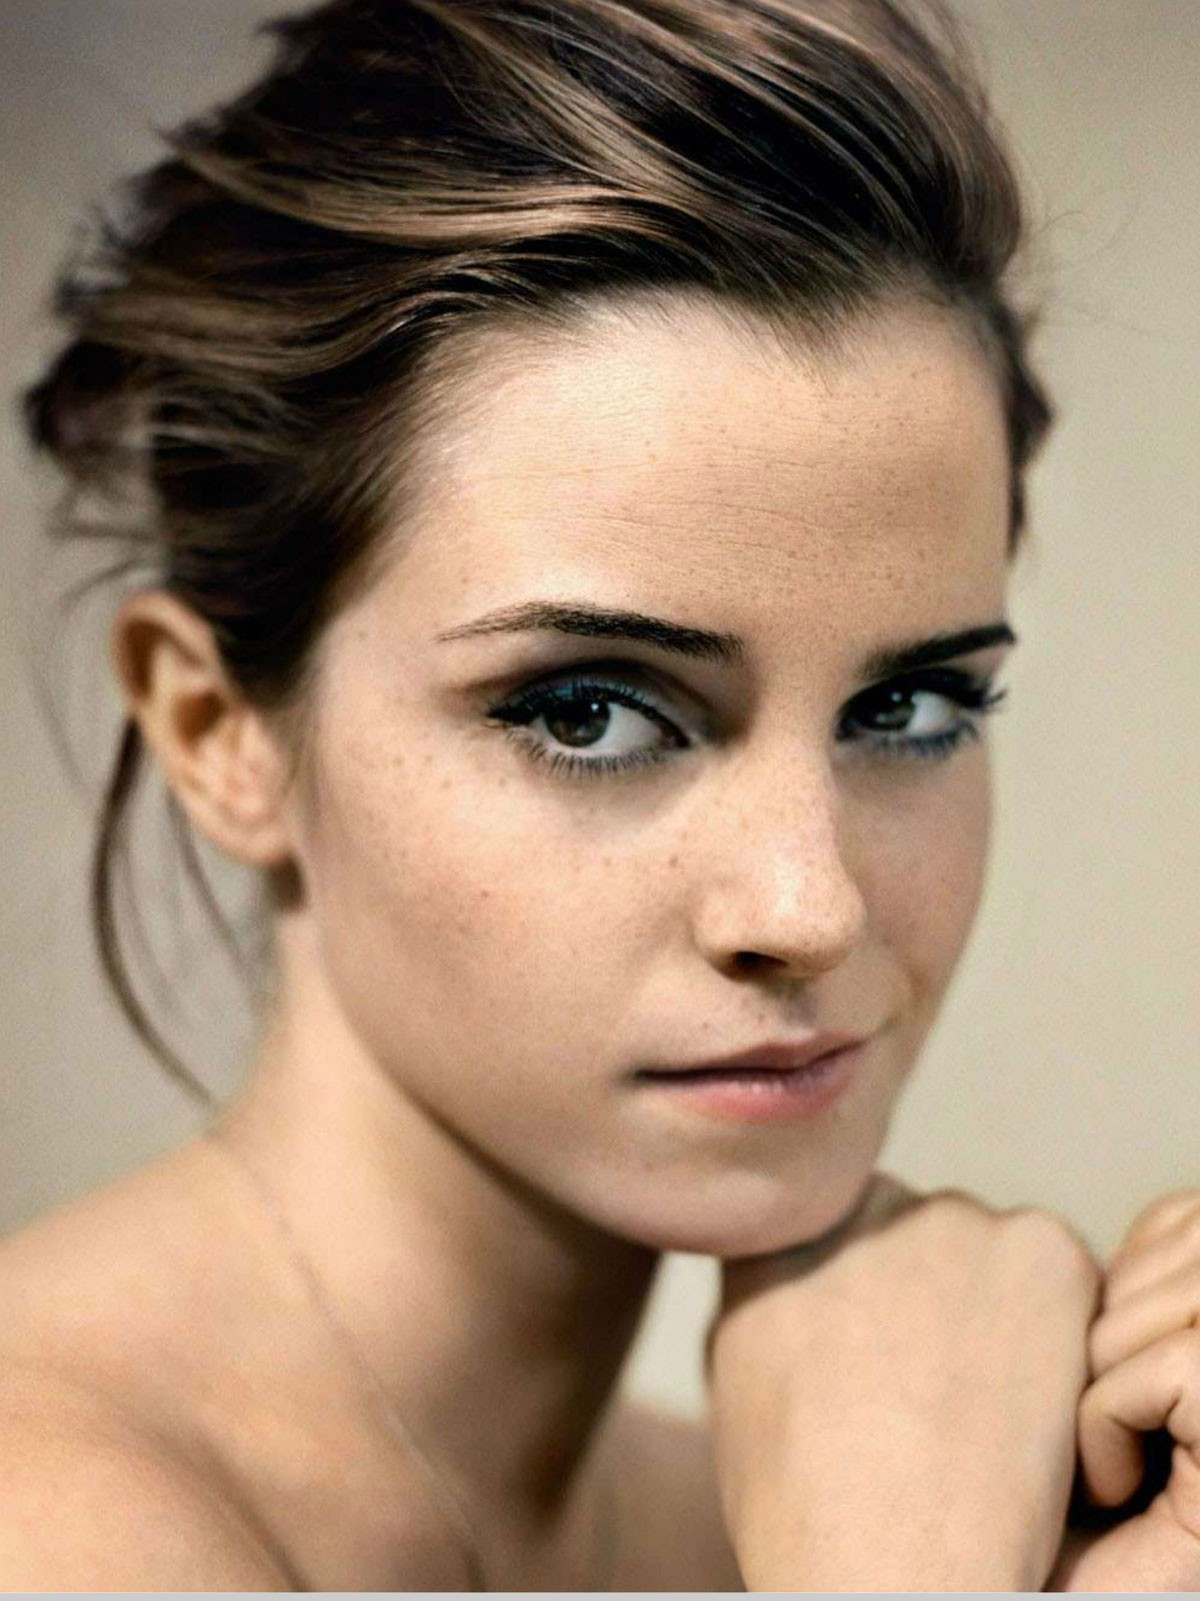 Emma Watson Hot Photo